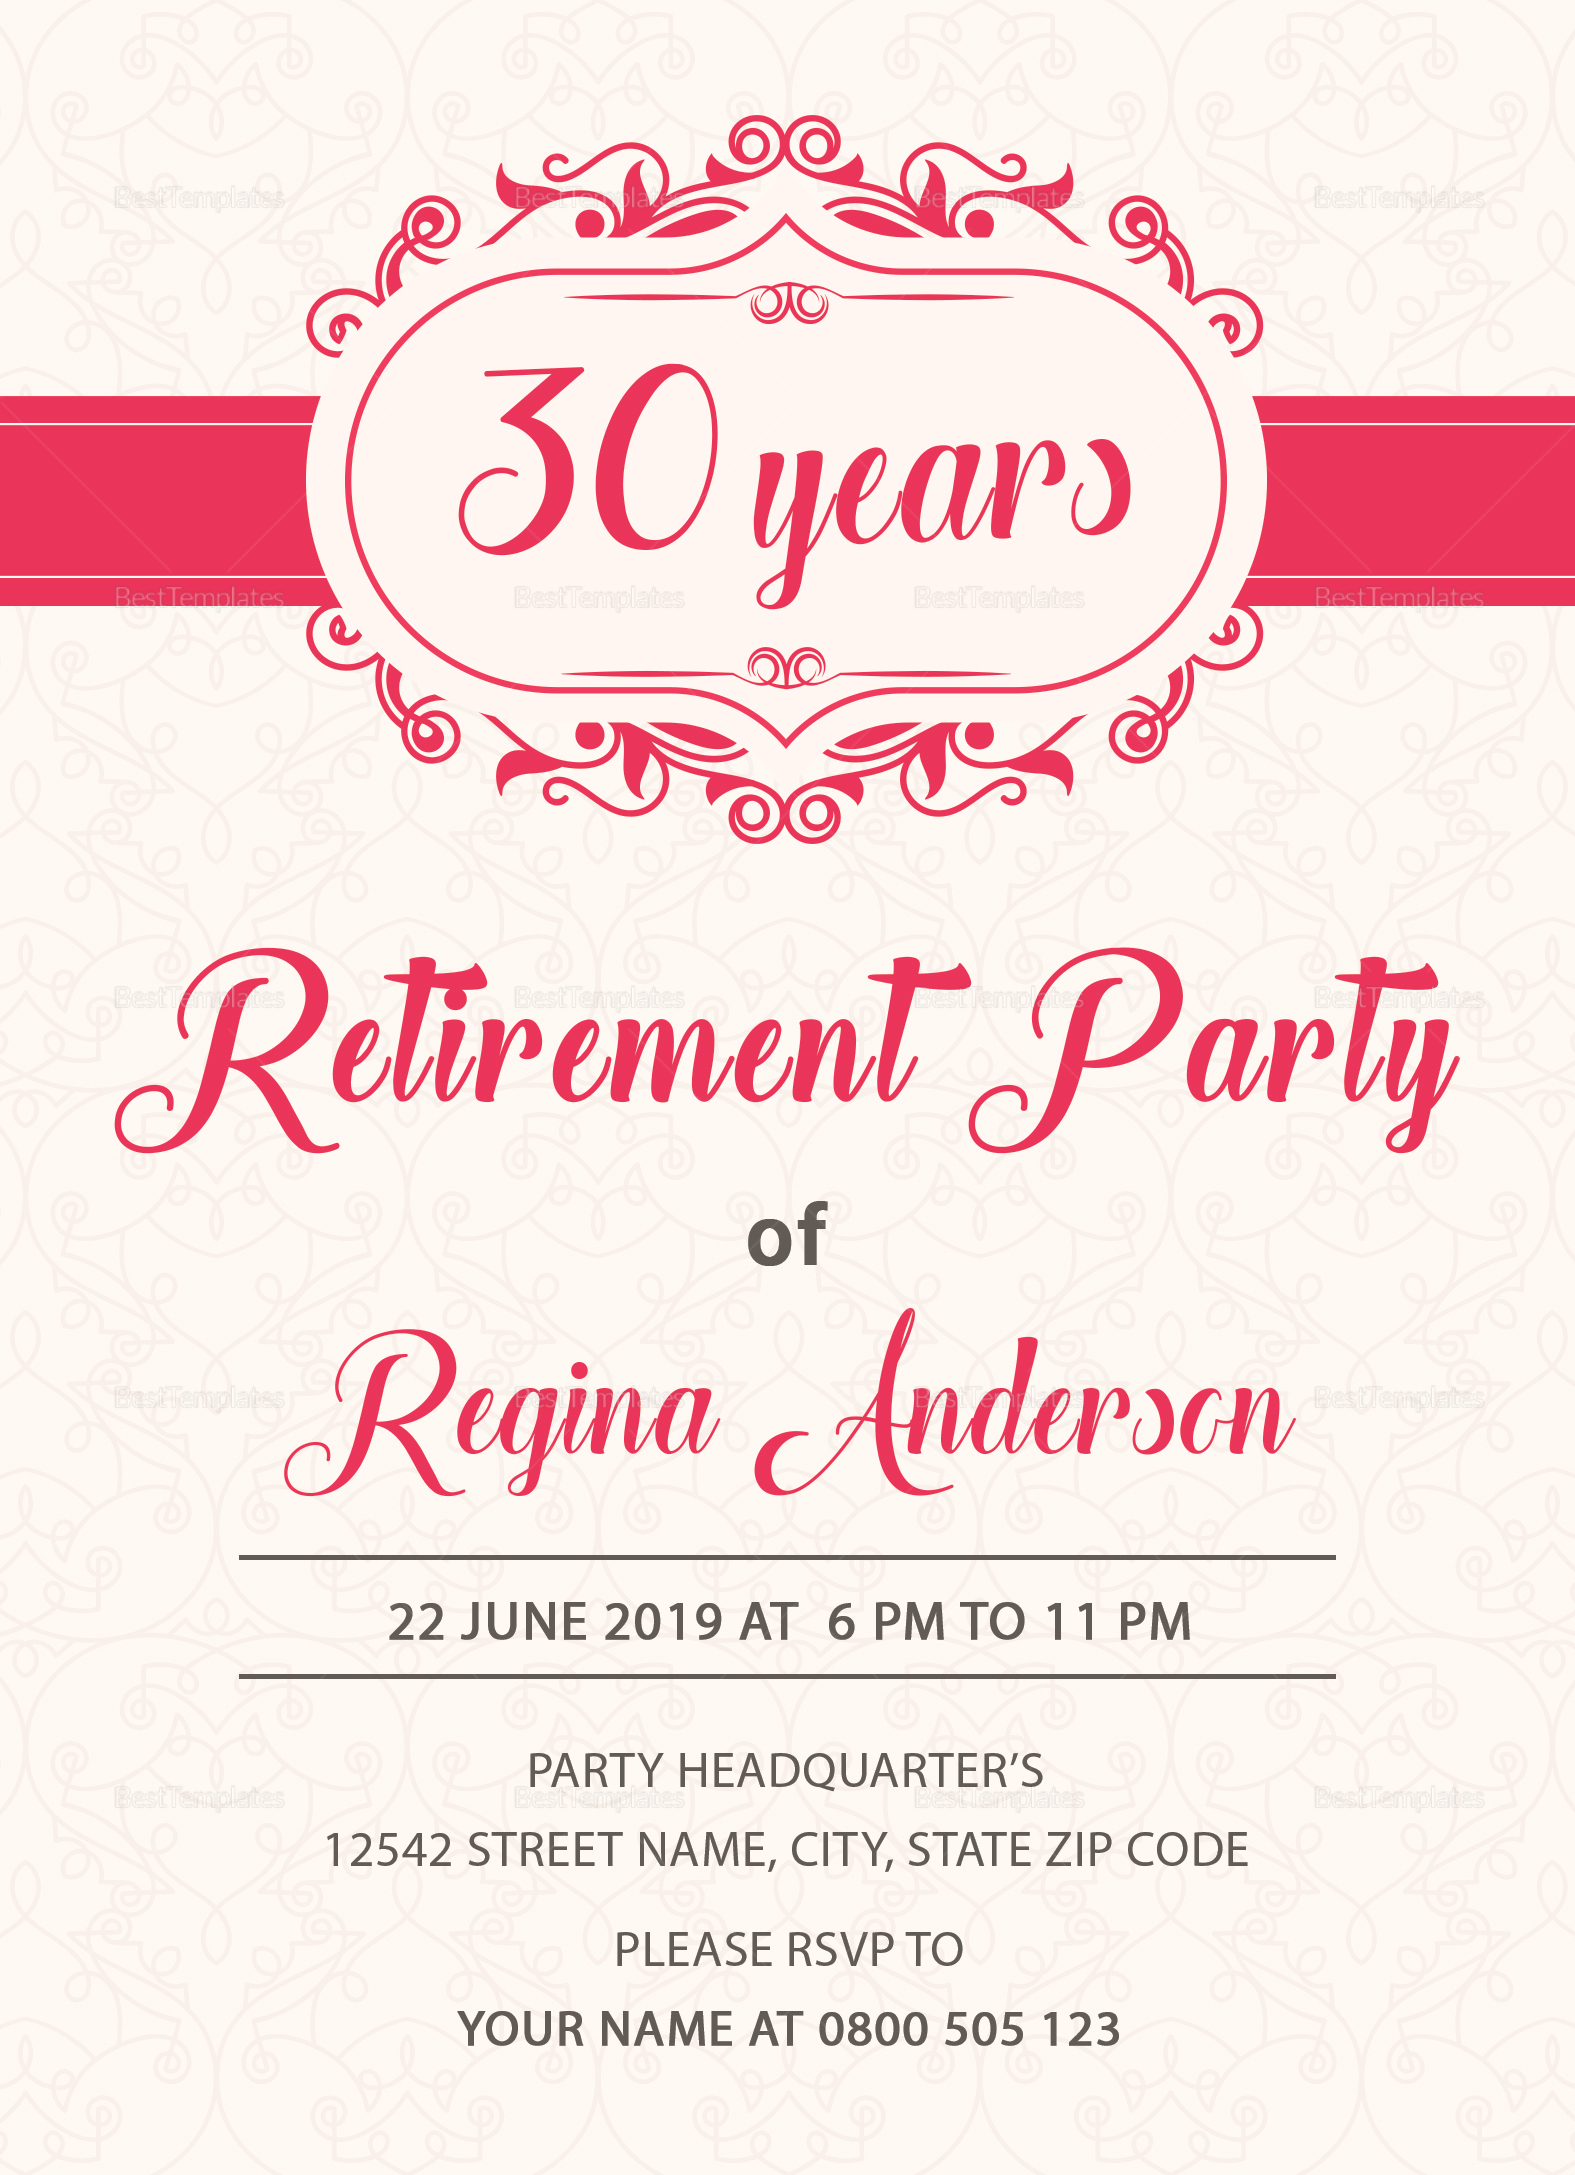 Sample Retirement Party Invitation Design Template in PSD, Word ...